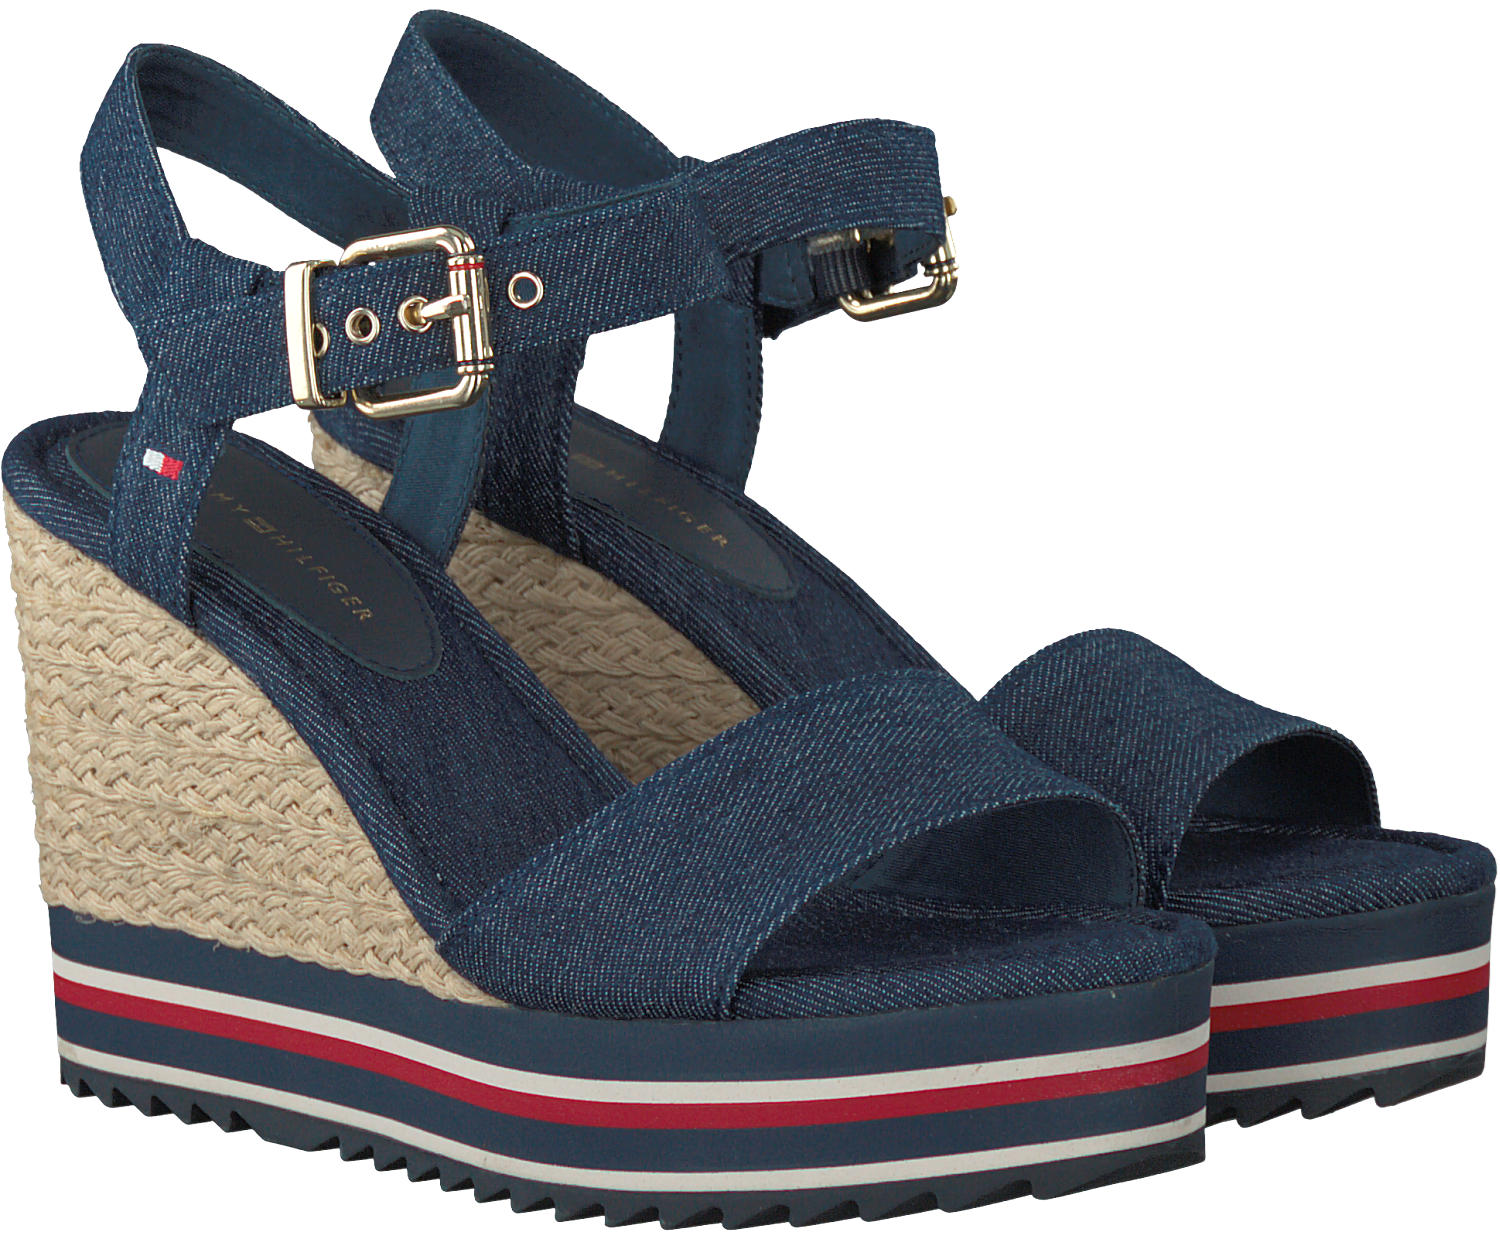 blaue tommy hilfiger sandalen veranice 1d schuhmode online. Black Bedroom Furniture Sets. Home Design Ideas